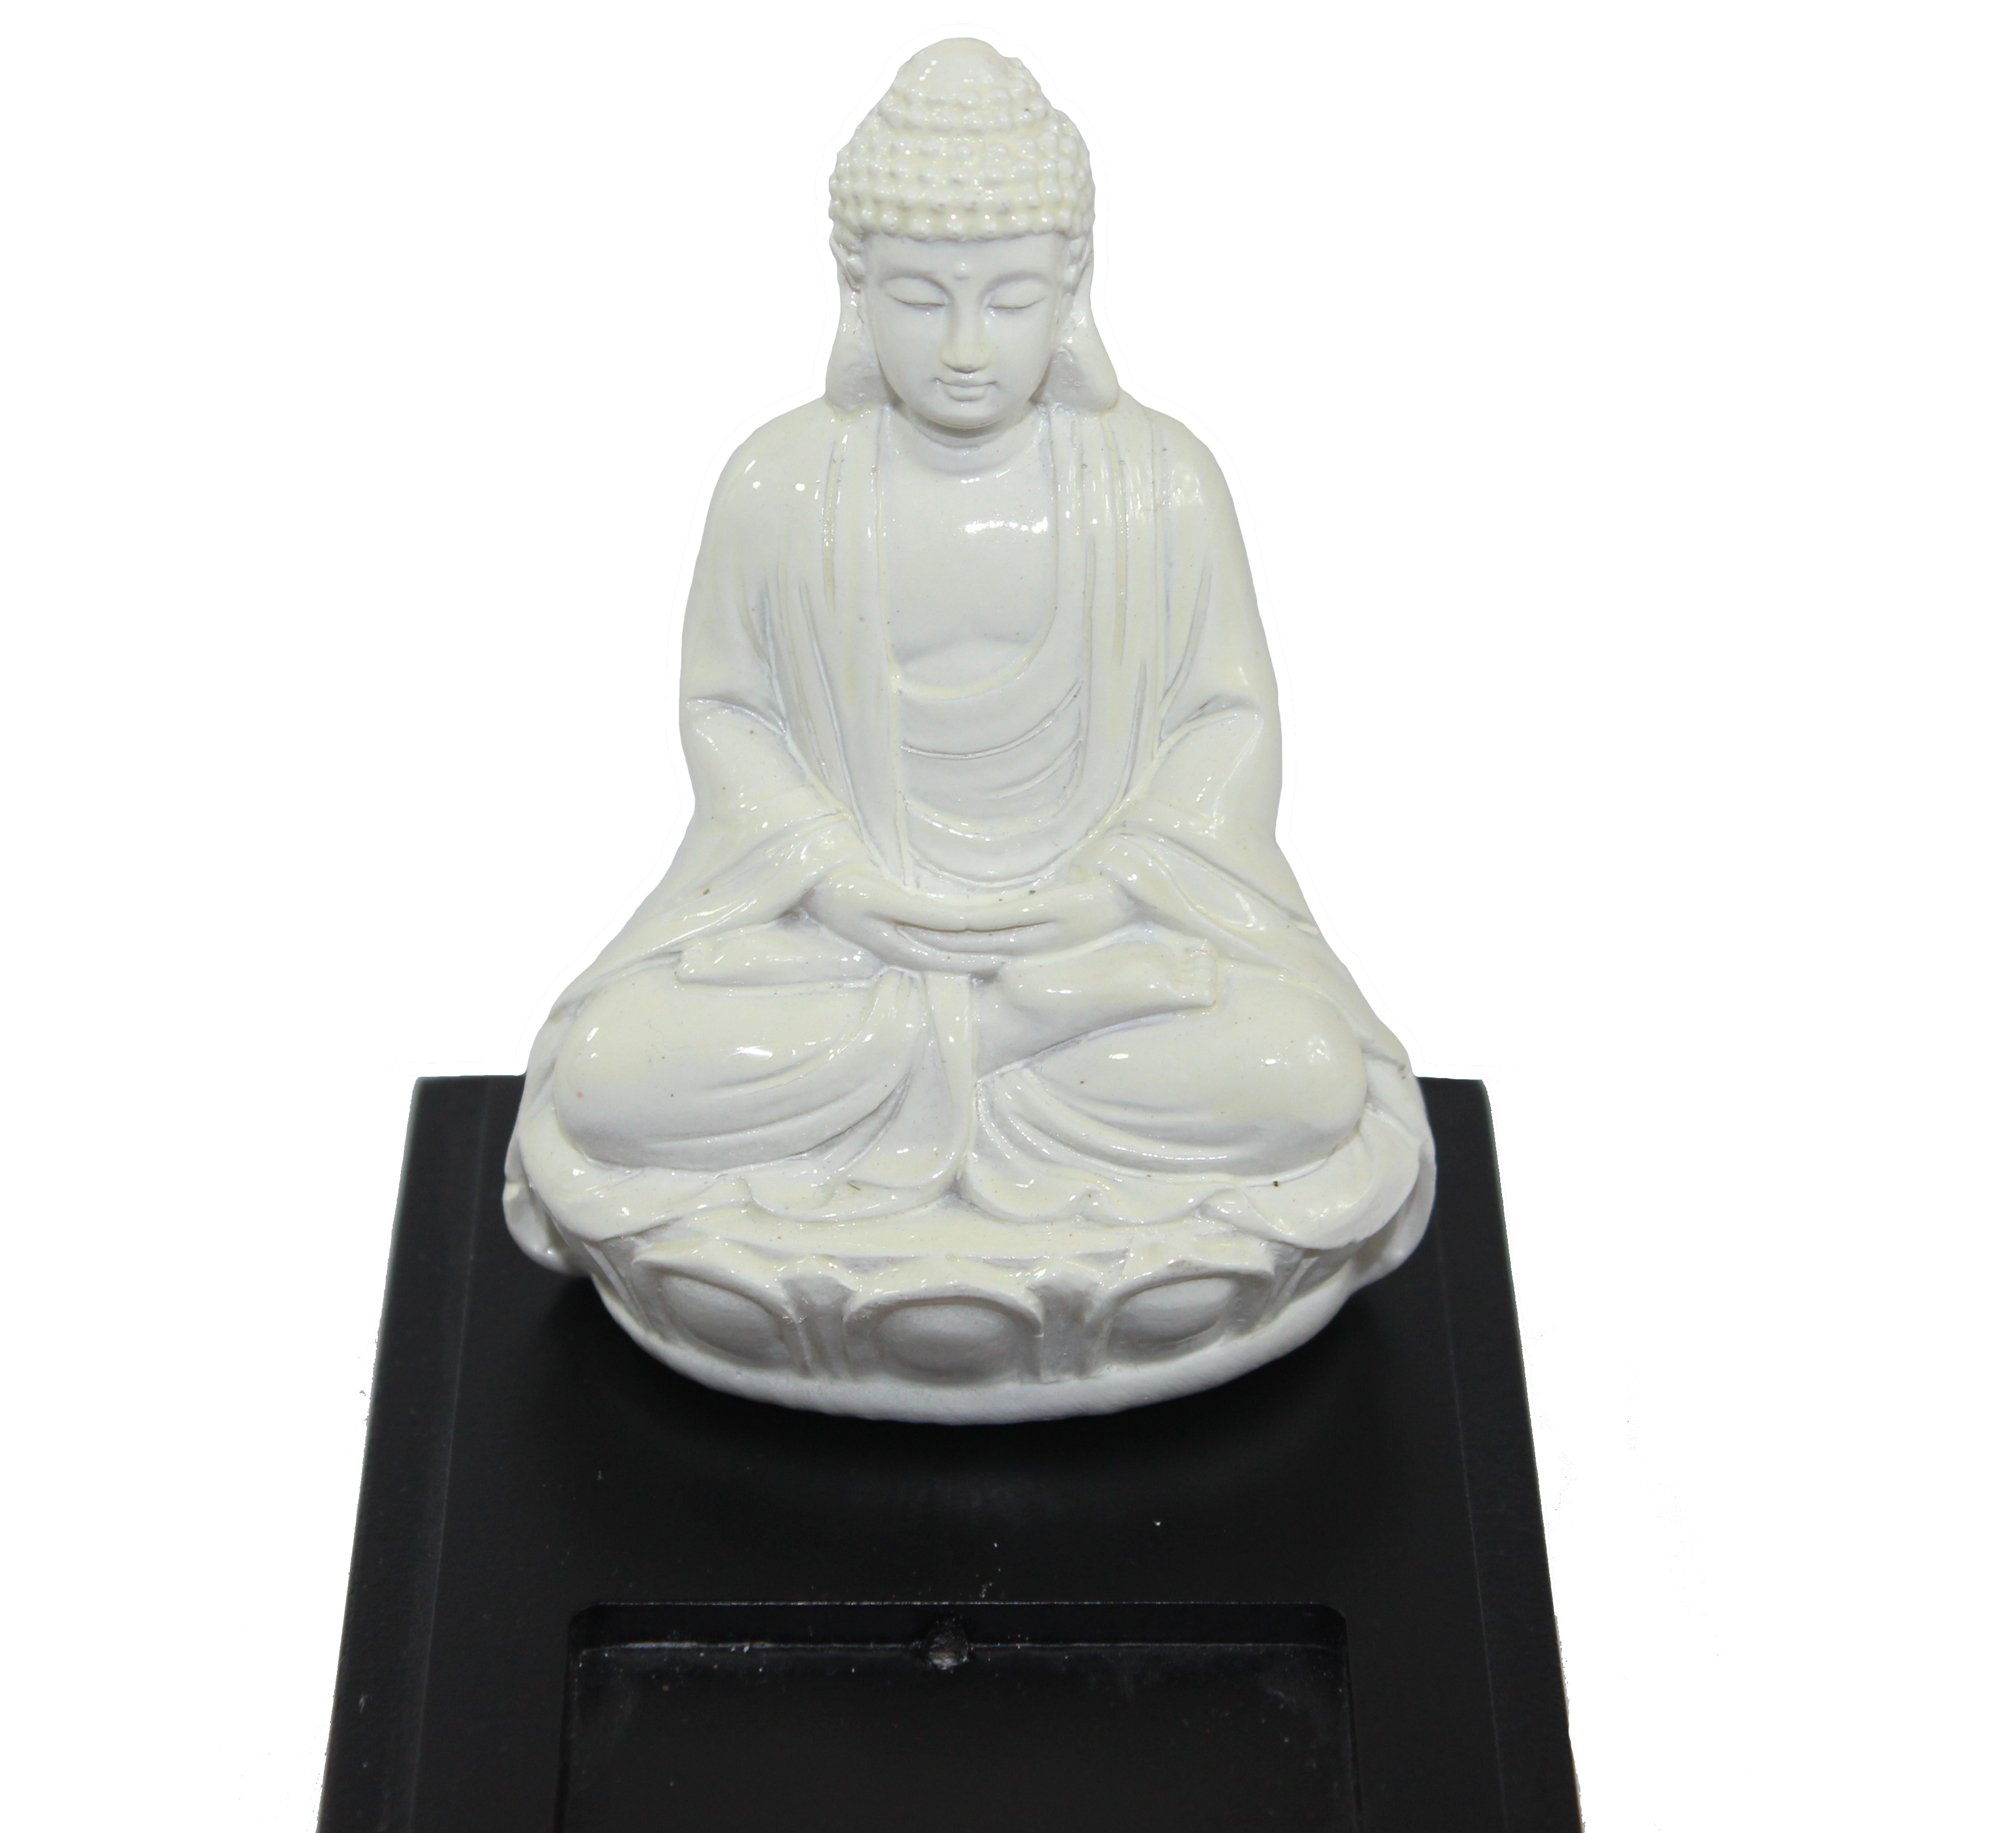 Black Wood Incense Burner Holder Tray with Buddha Figurine by Seraphic (Image #3)